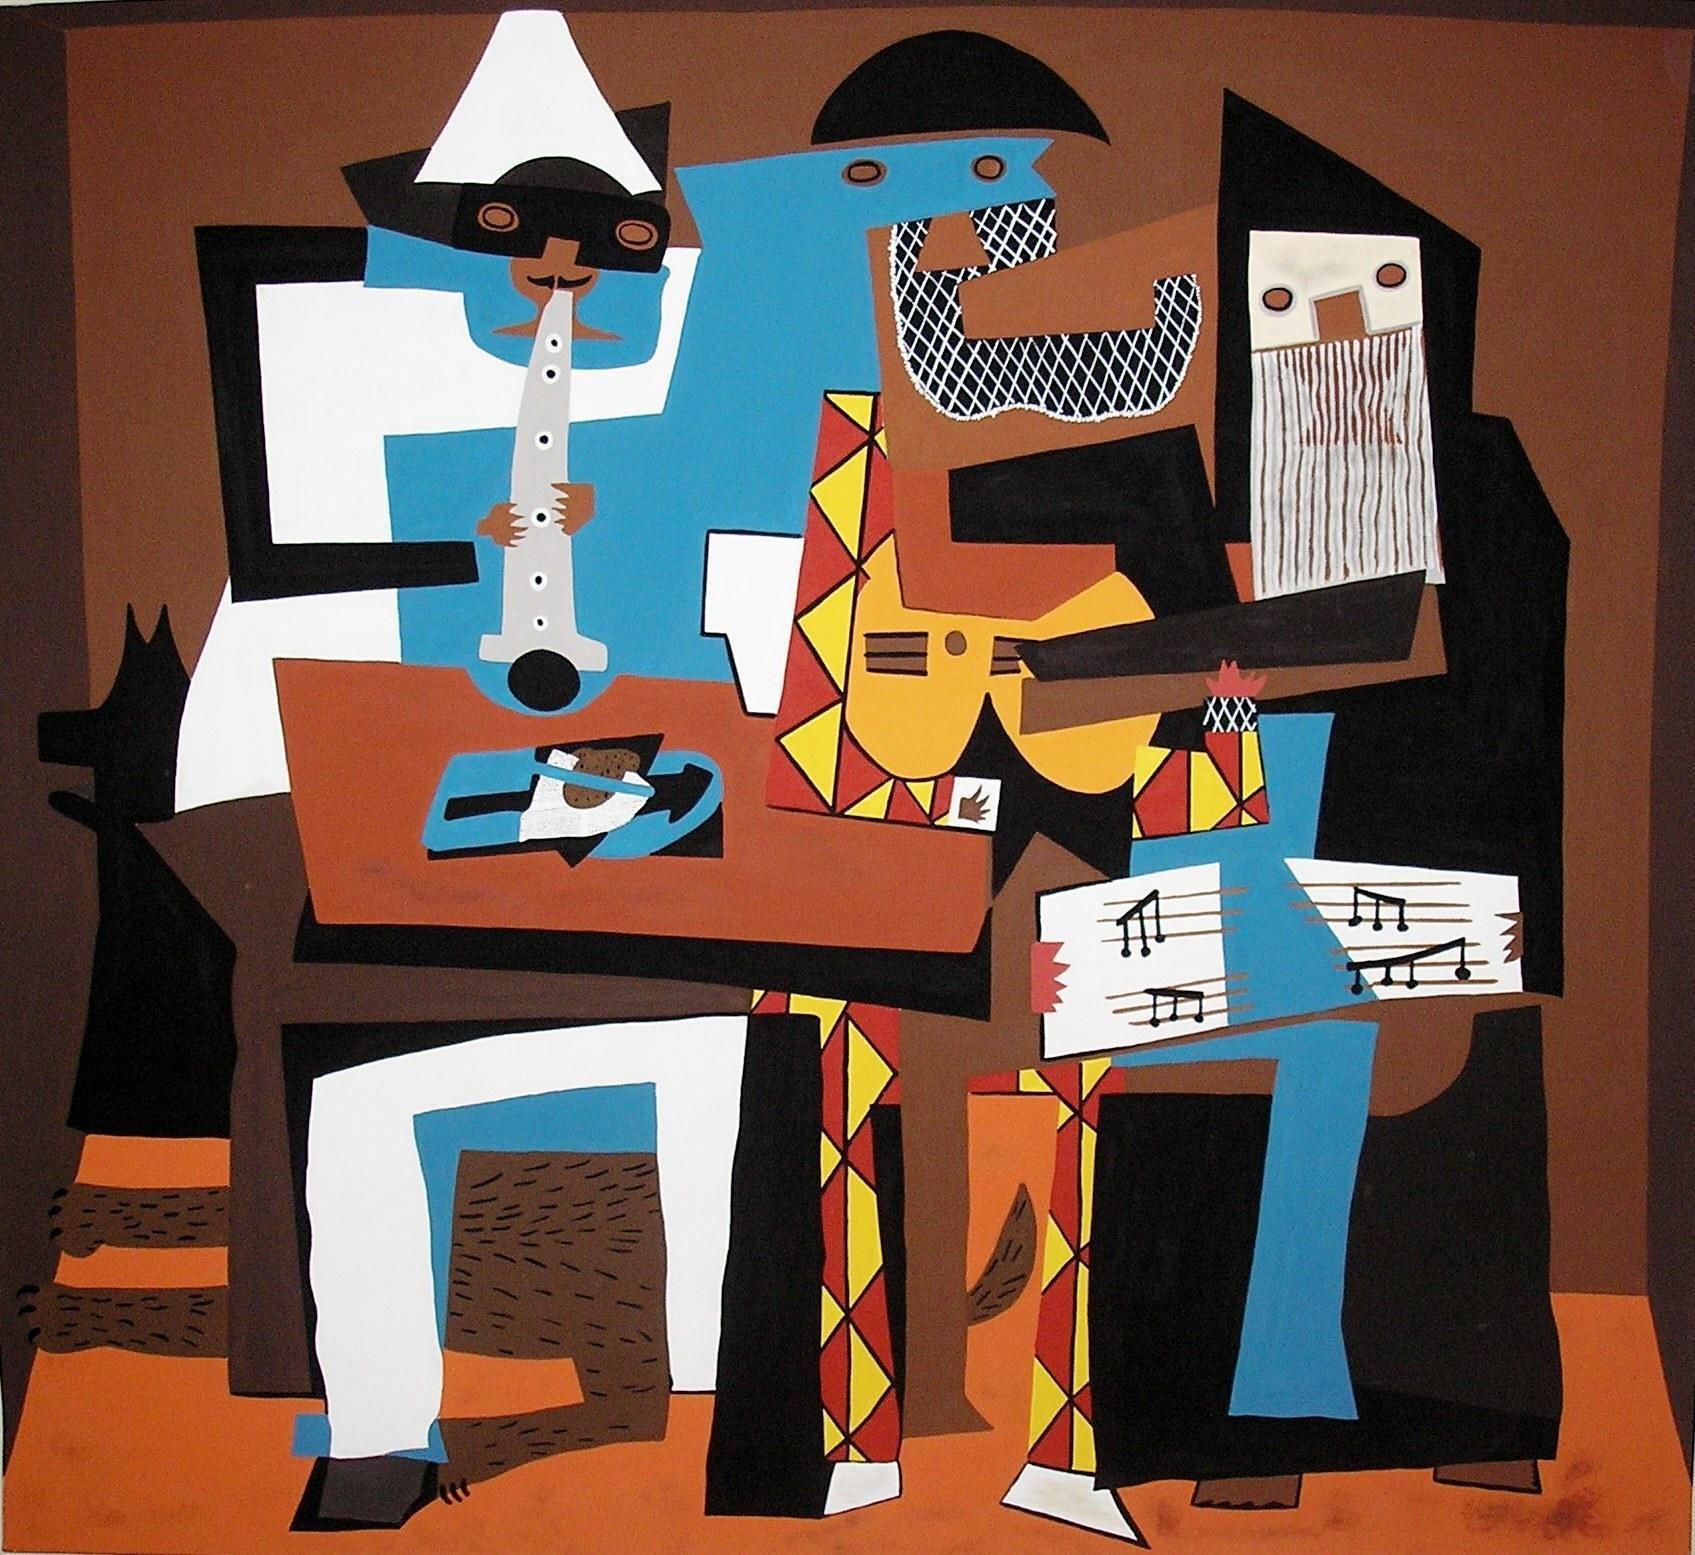 Pablo Picasso Spanish Synthetic Cubism 1881 1973 Three Musicians 1921 Oil On Canvas 6 7 X 7 3 3 4 200 7 X 222 9 Picasso Art Pablo Picasso Picasso